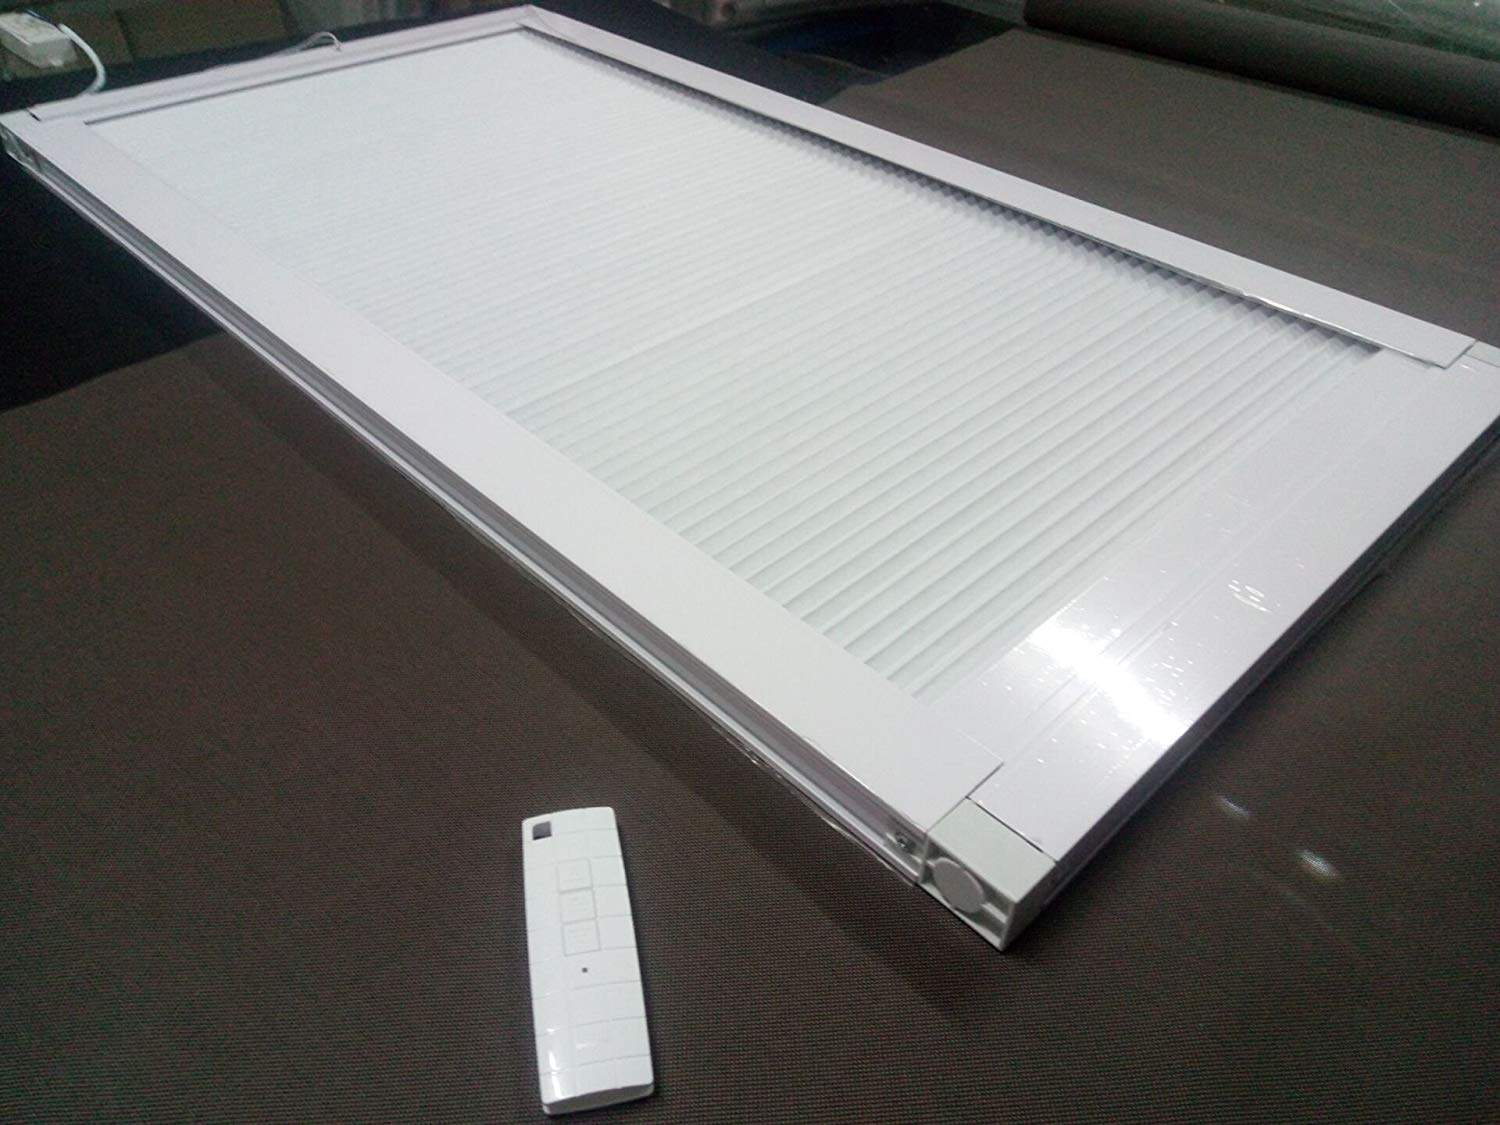 This skylight window shade effectively regulates the brightness of your room by adjusting the fabric open or closed with pole or motorize remote control if at motorize system.